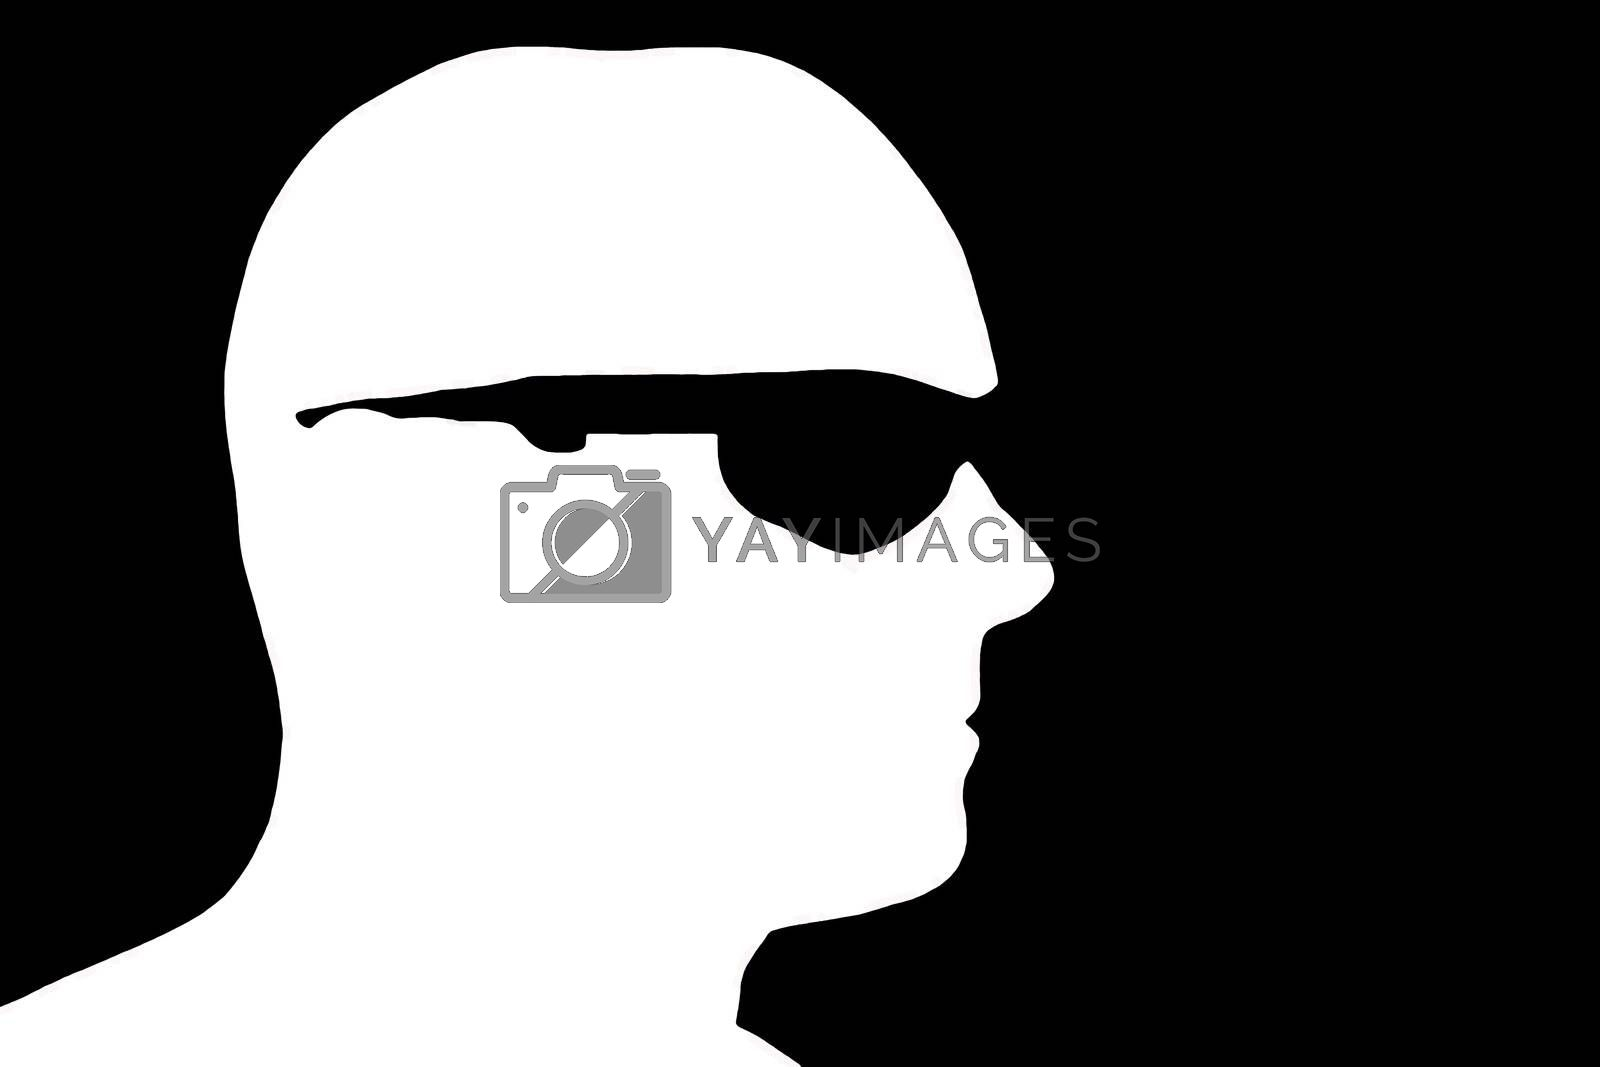 Profile view in silhouette of a man wearing sunglasses